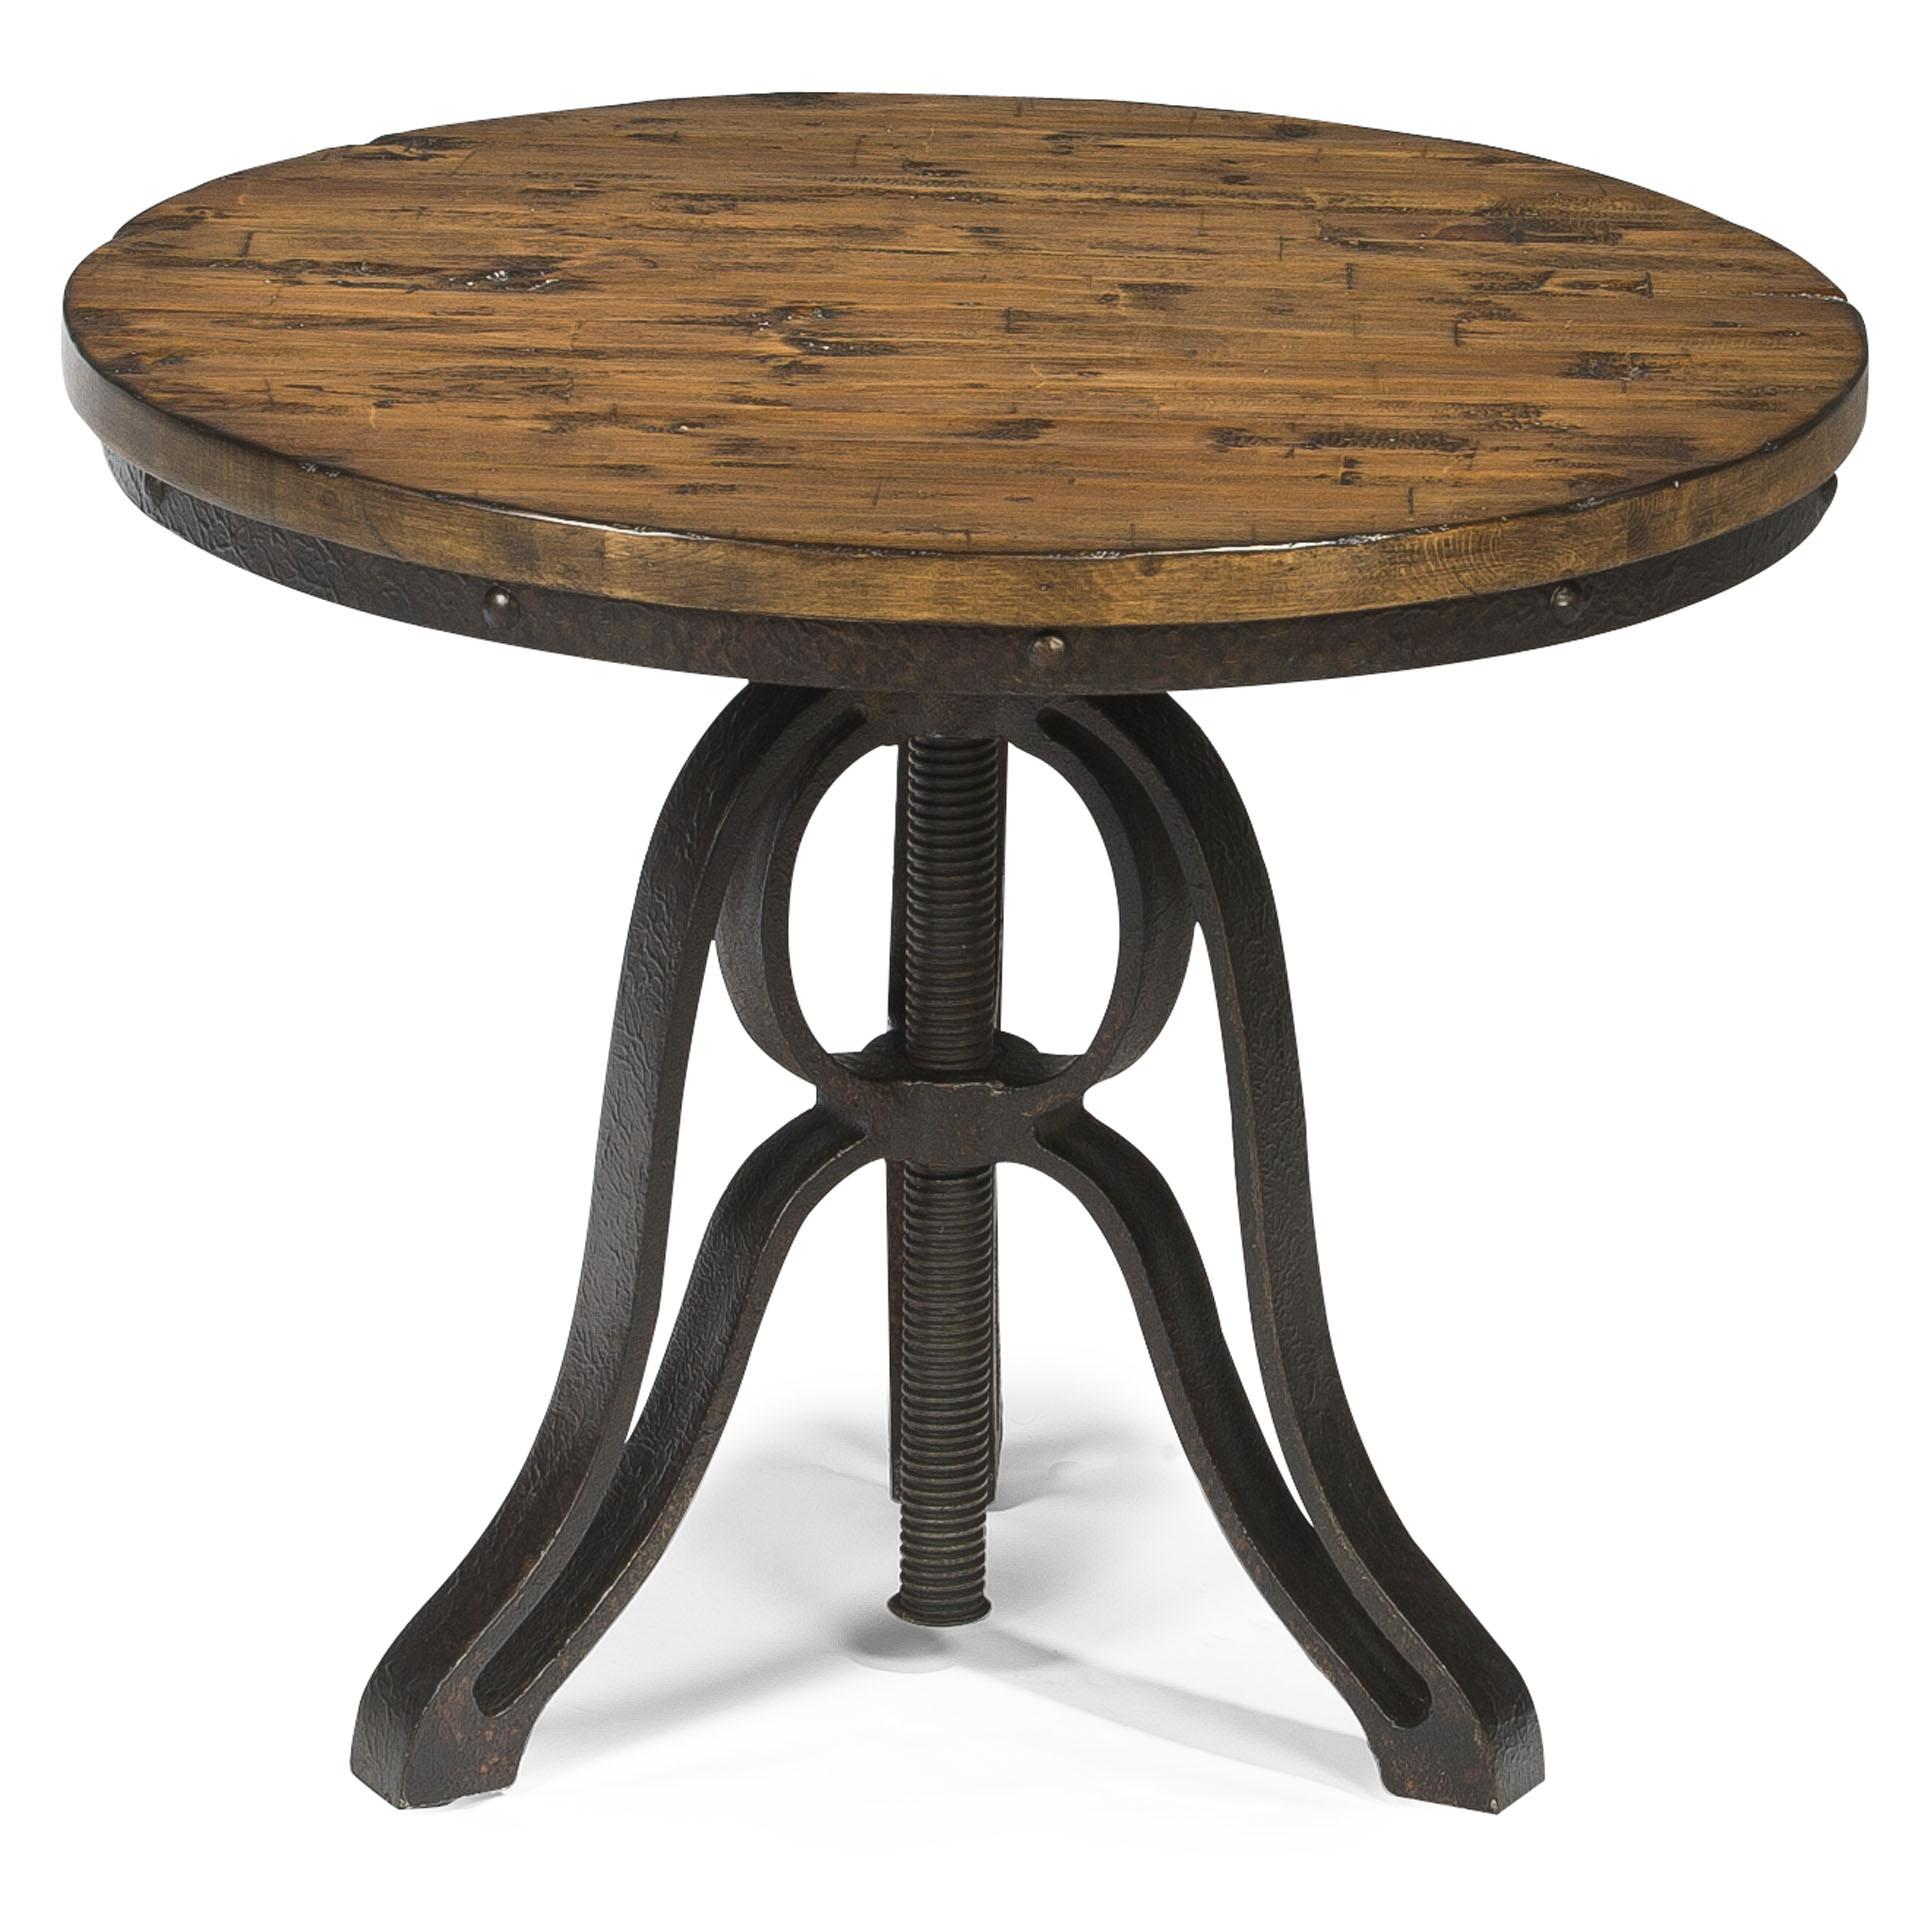 Magnussen Home Rondell Round End Table - Item Number: T2299-05